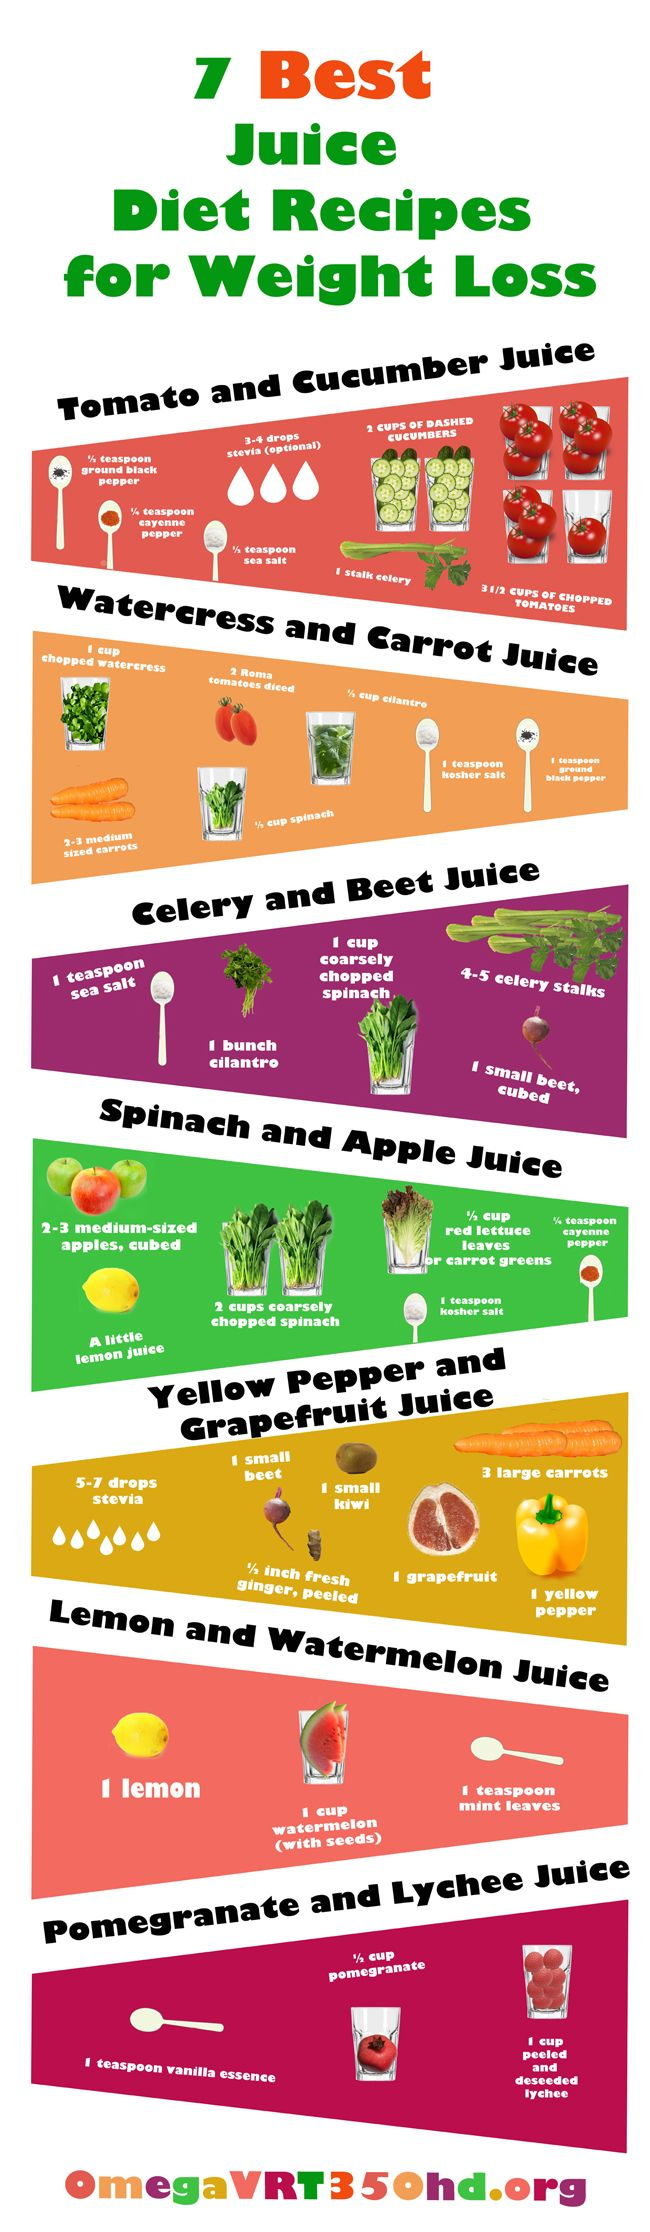 7 Simple Juicing Recipes for Weight Loss